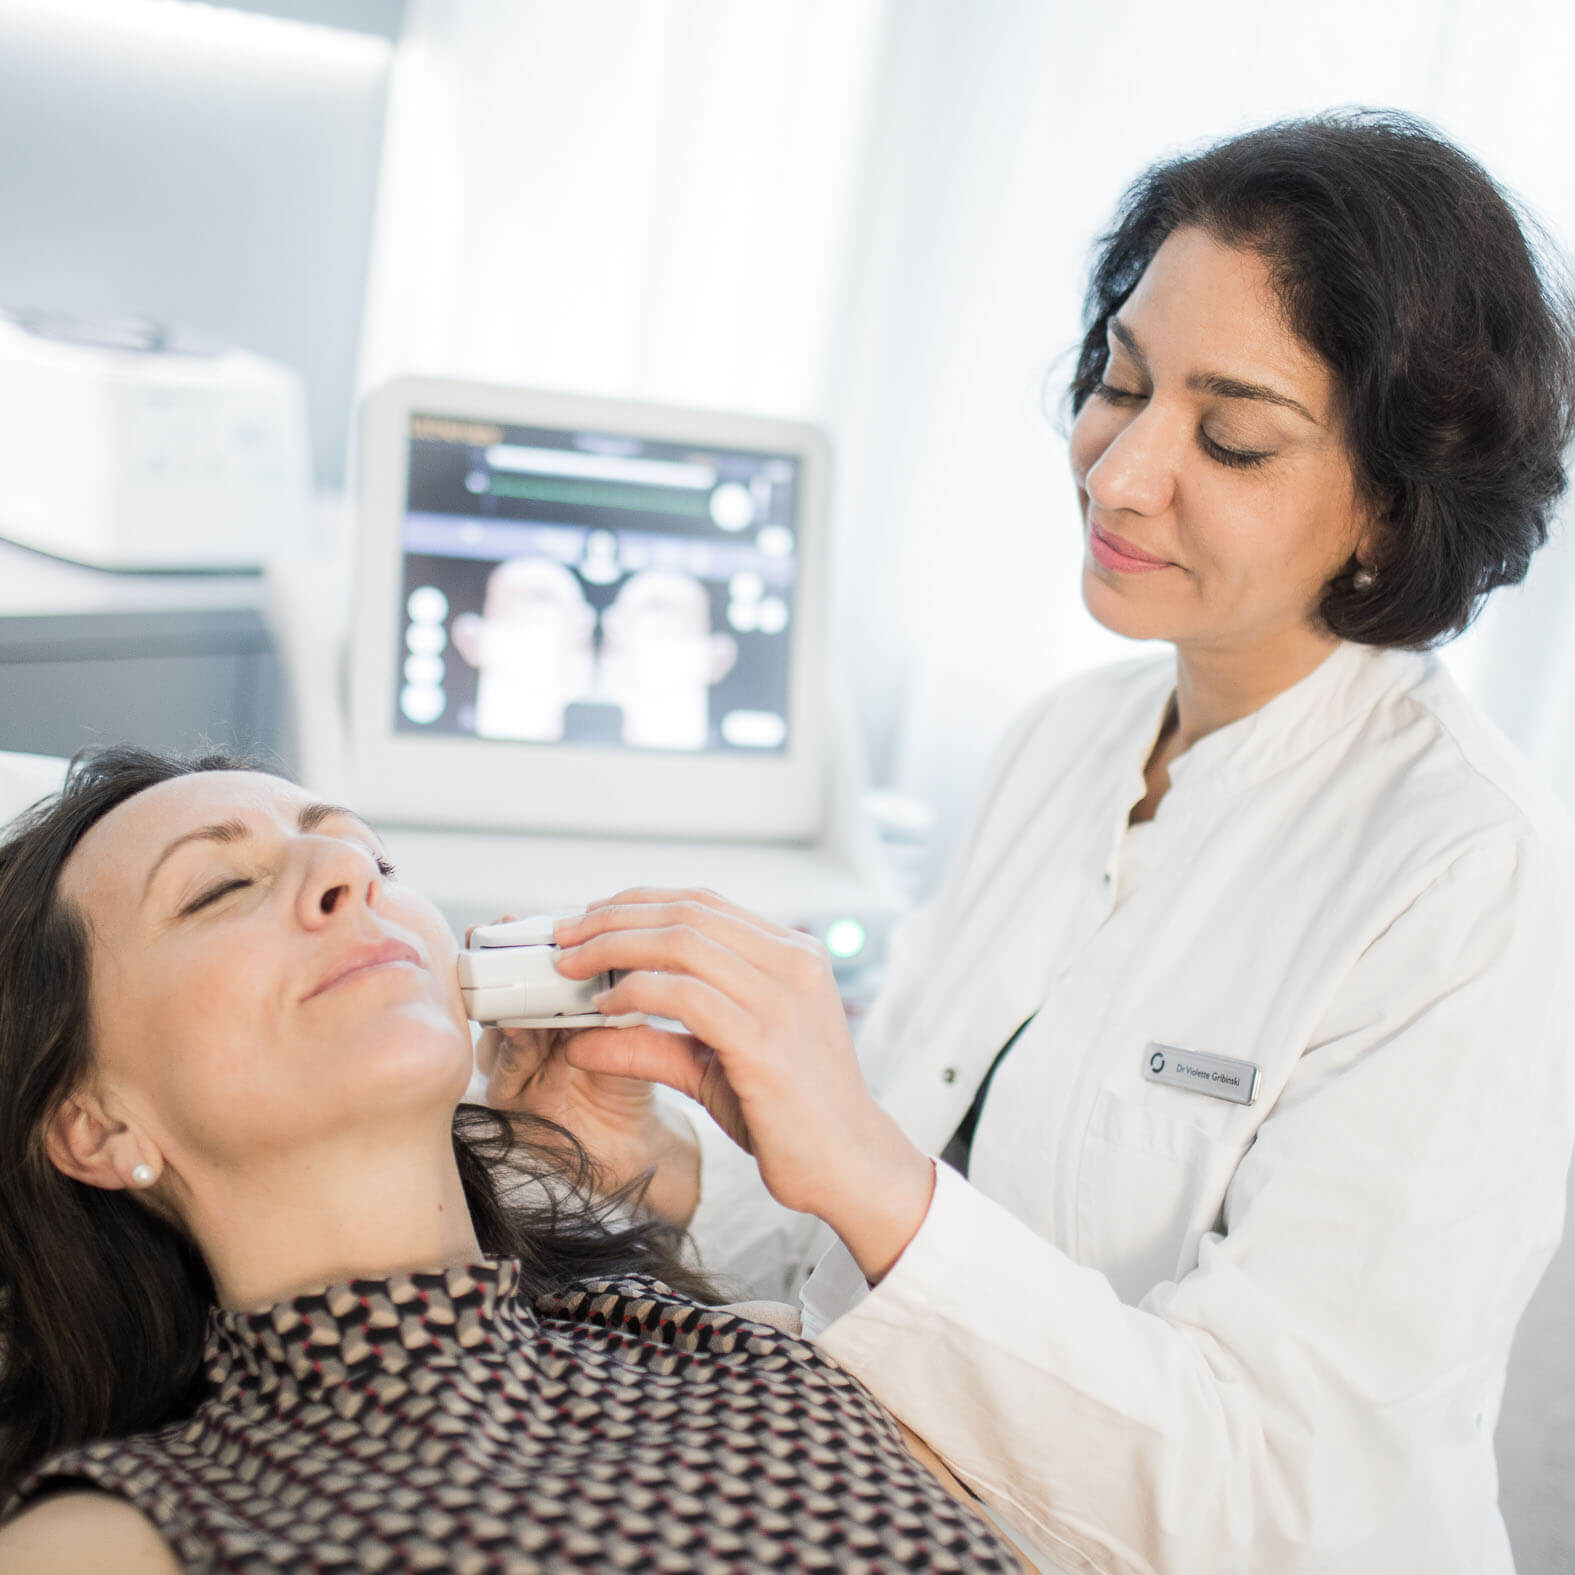 Ultherapy - ultrasound non-surgical face-lifting in Lausanne